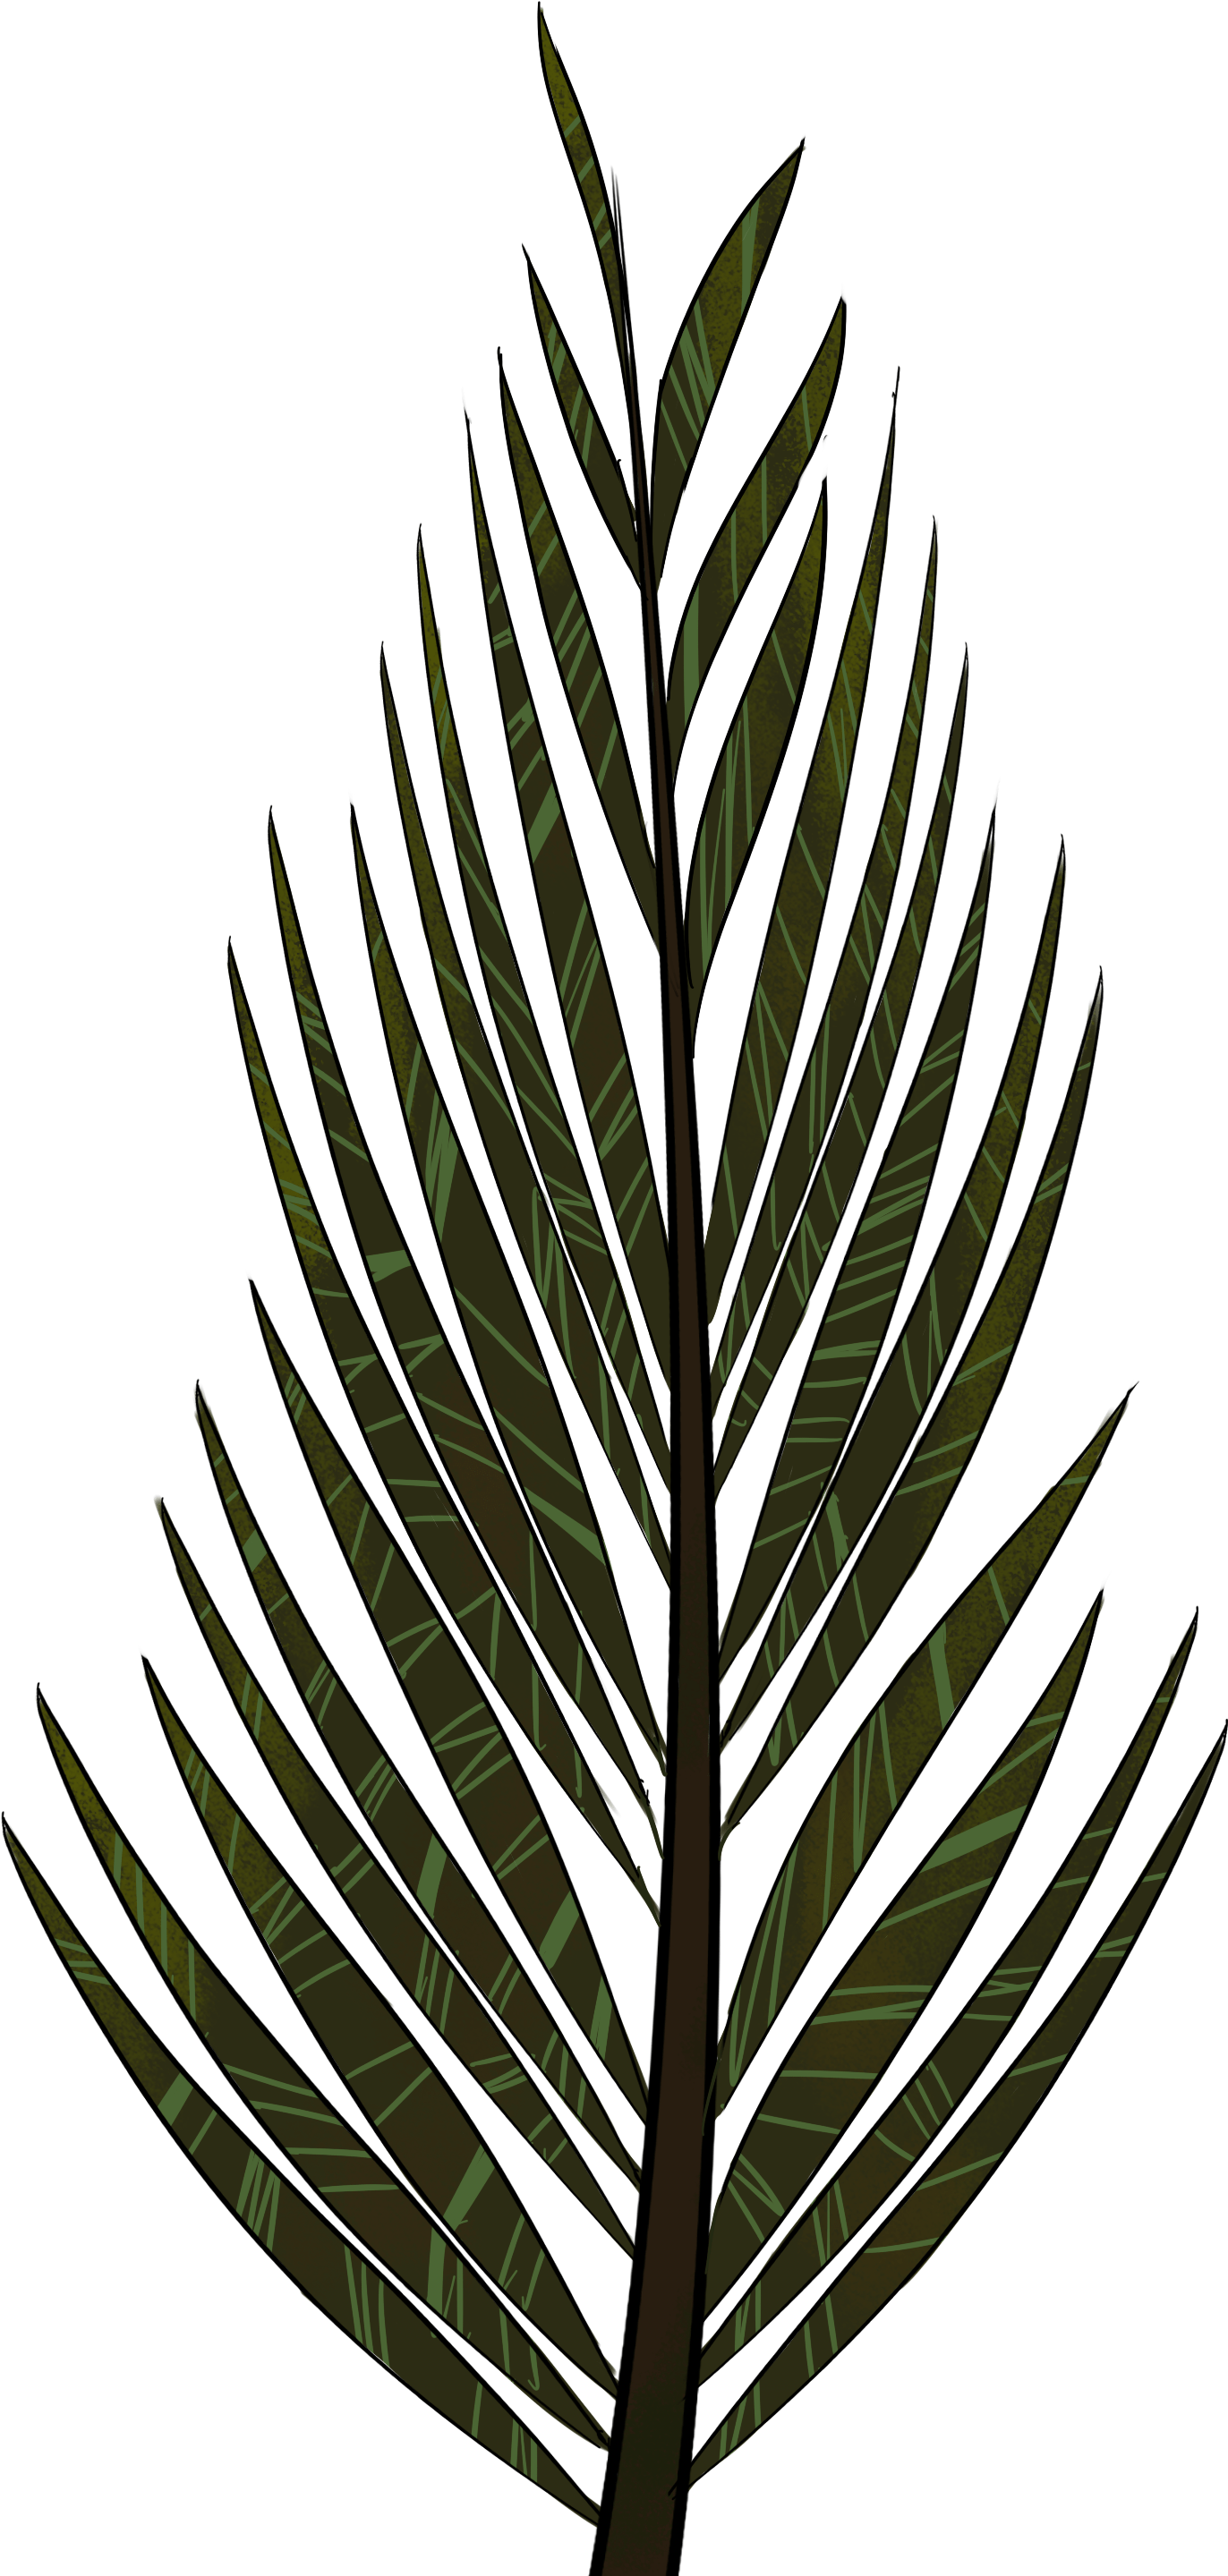 hight resolution of pine tree clip art png pine tree clipart fern tree png download